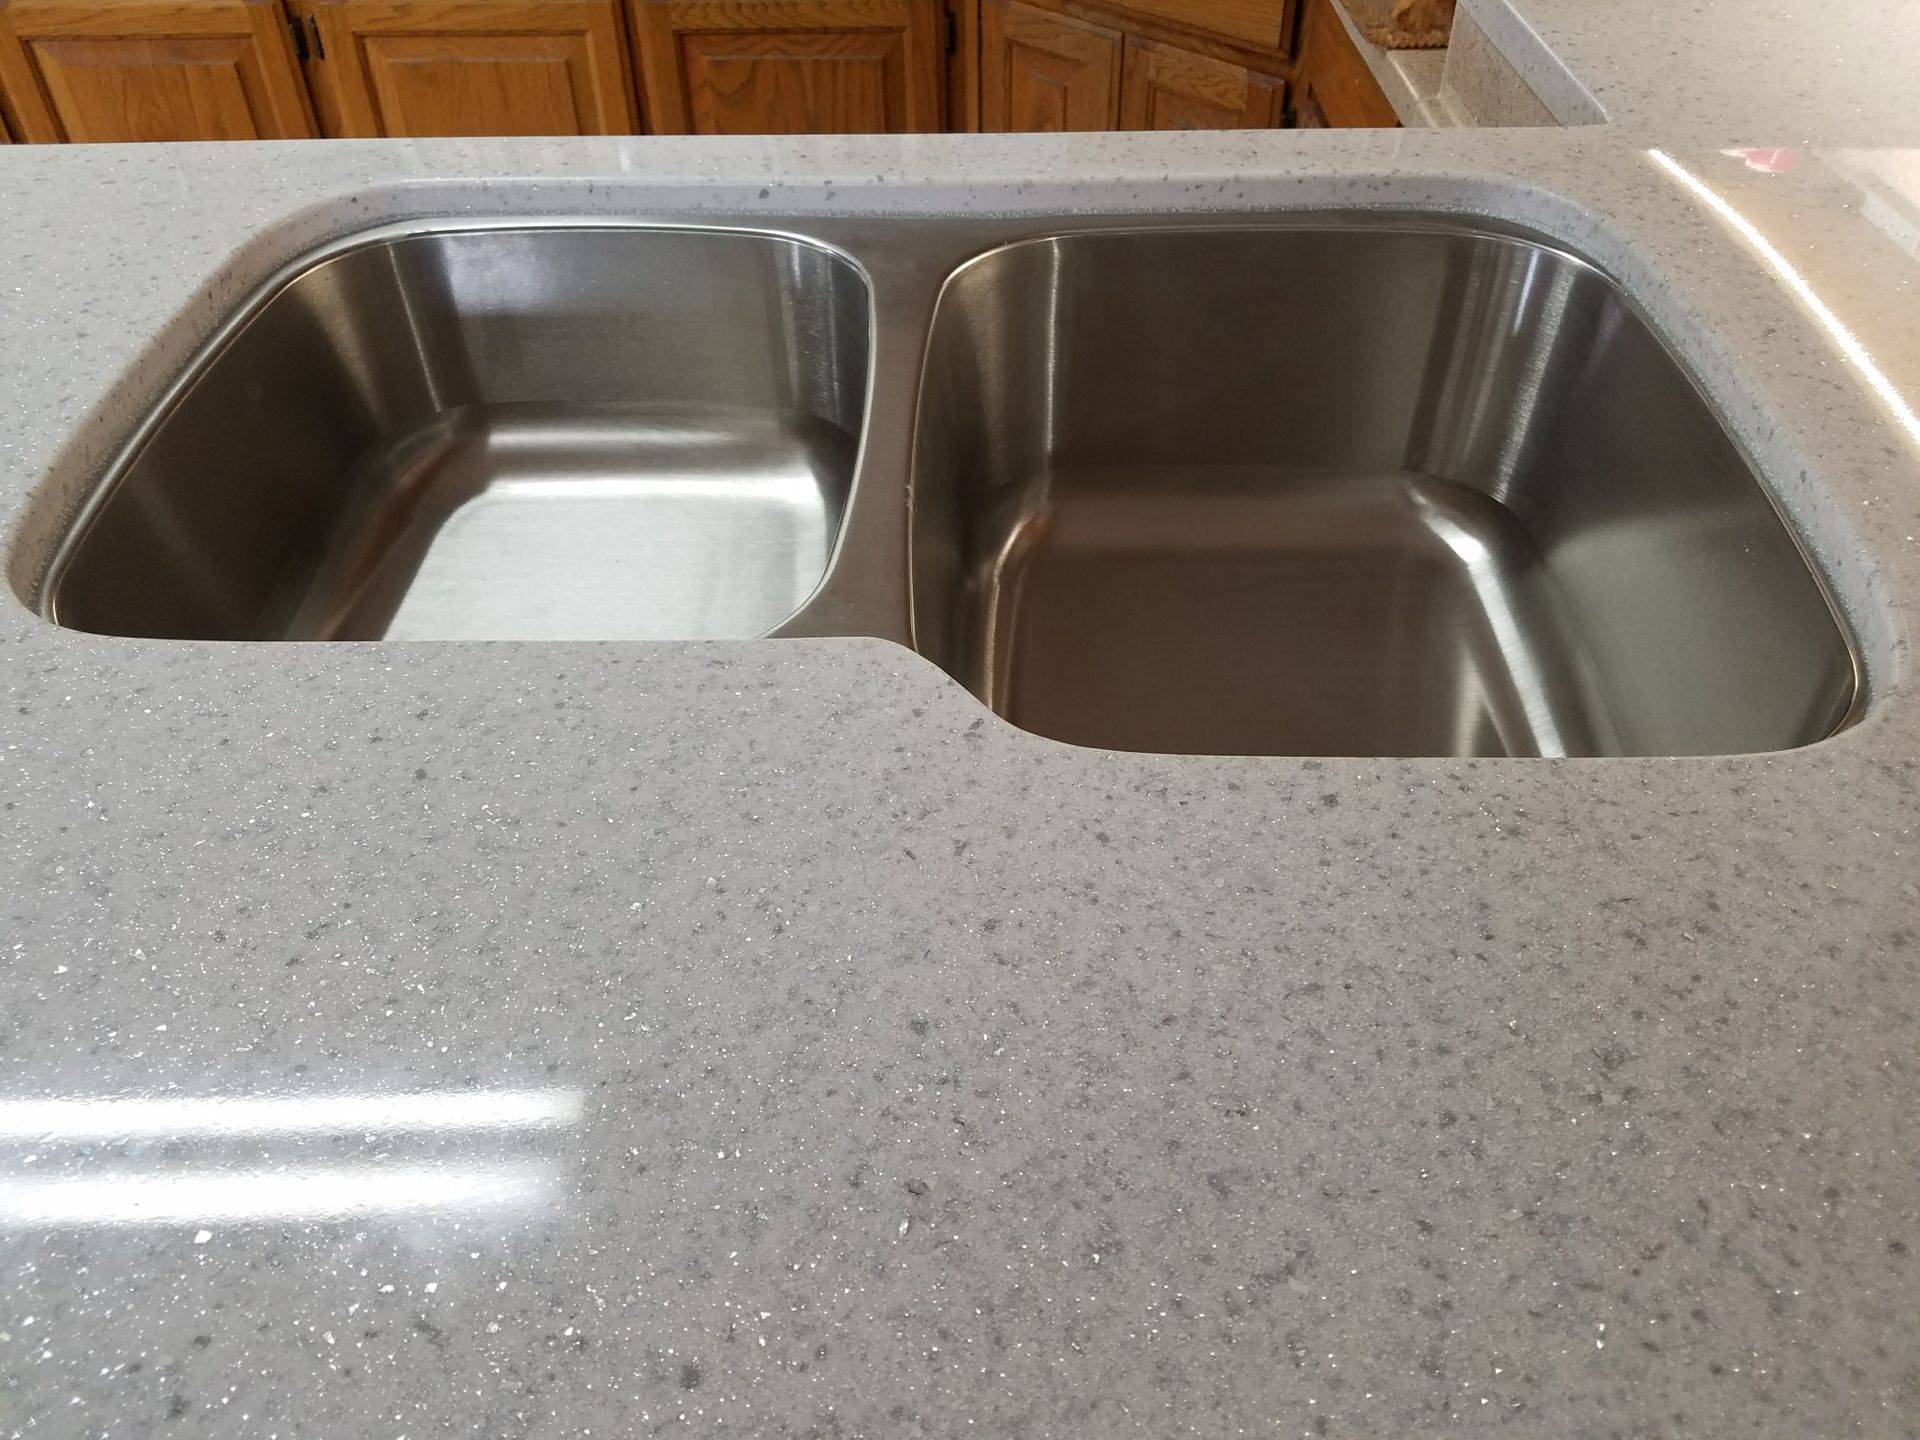 Granite Kitchen Sink / Counter Top